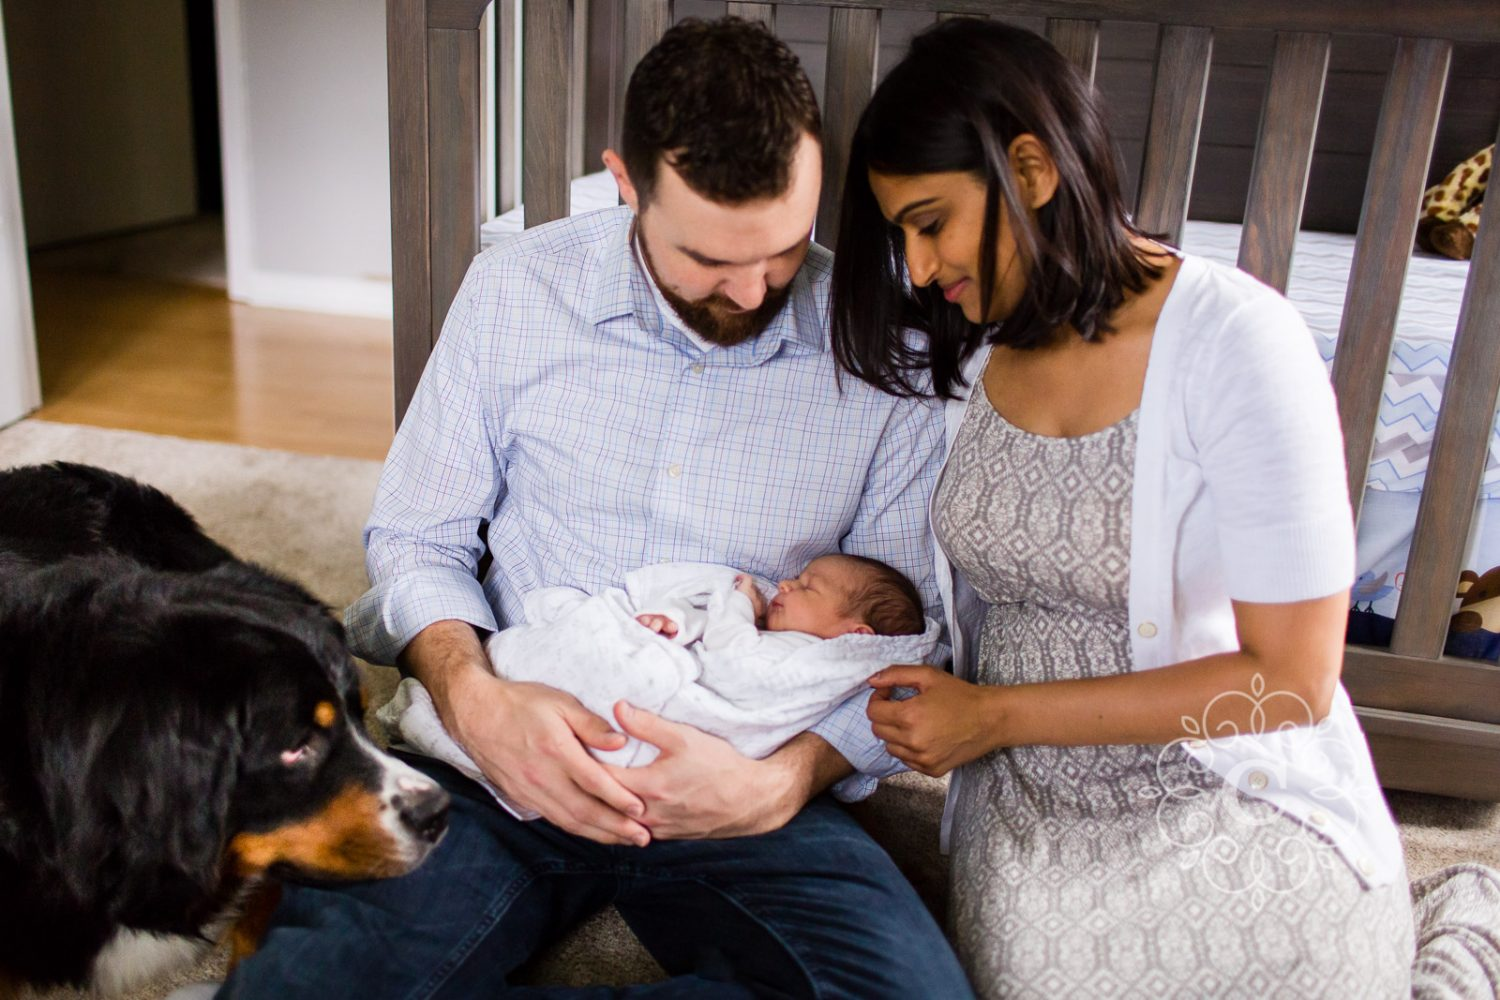 Minneapolis-St Paul Newborn Photography by Carina Photographics